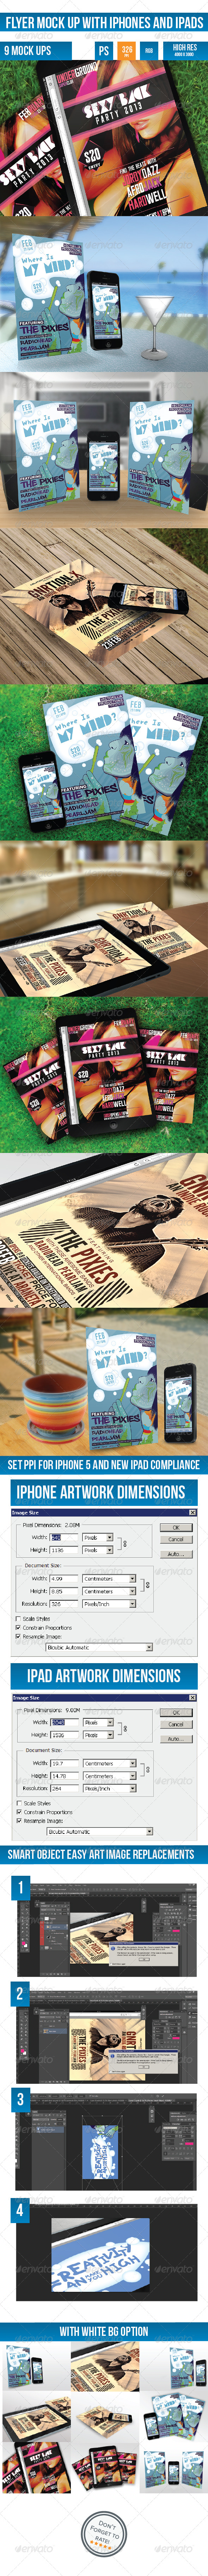 GraphicRiver Flyer Mock-up with iPhones and iPads Previews 4392622